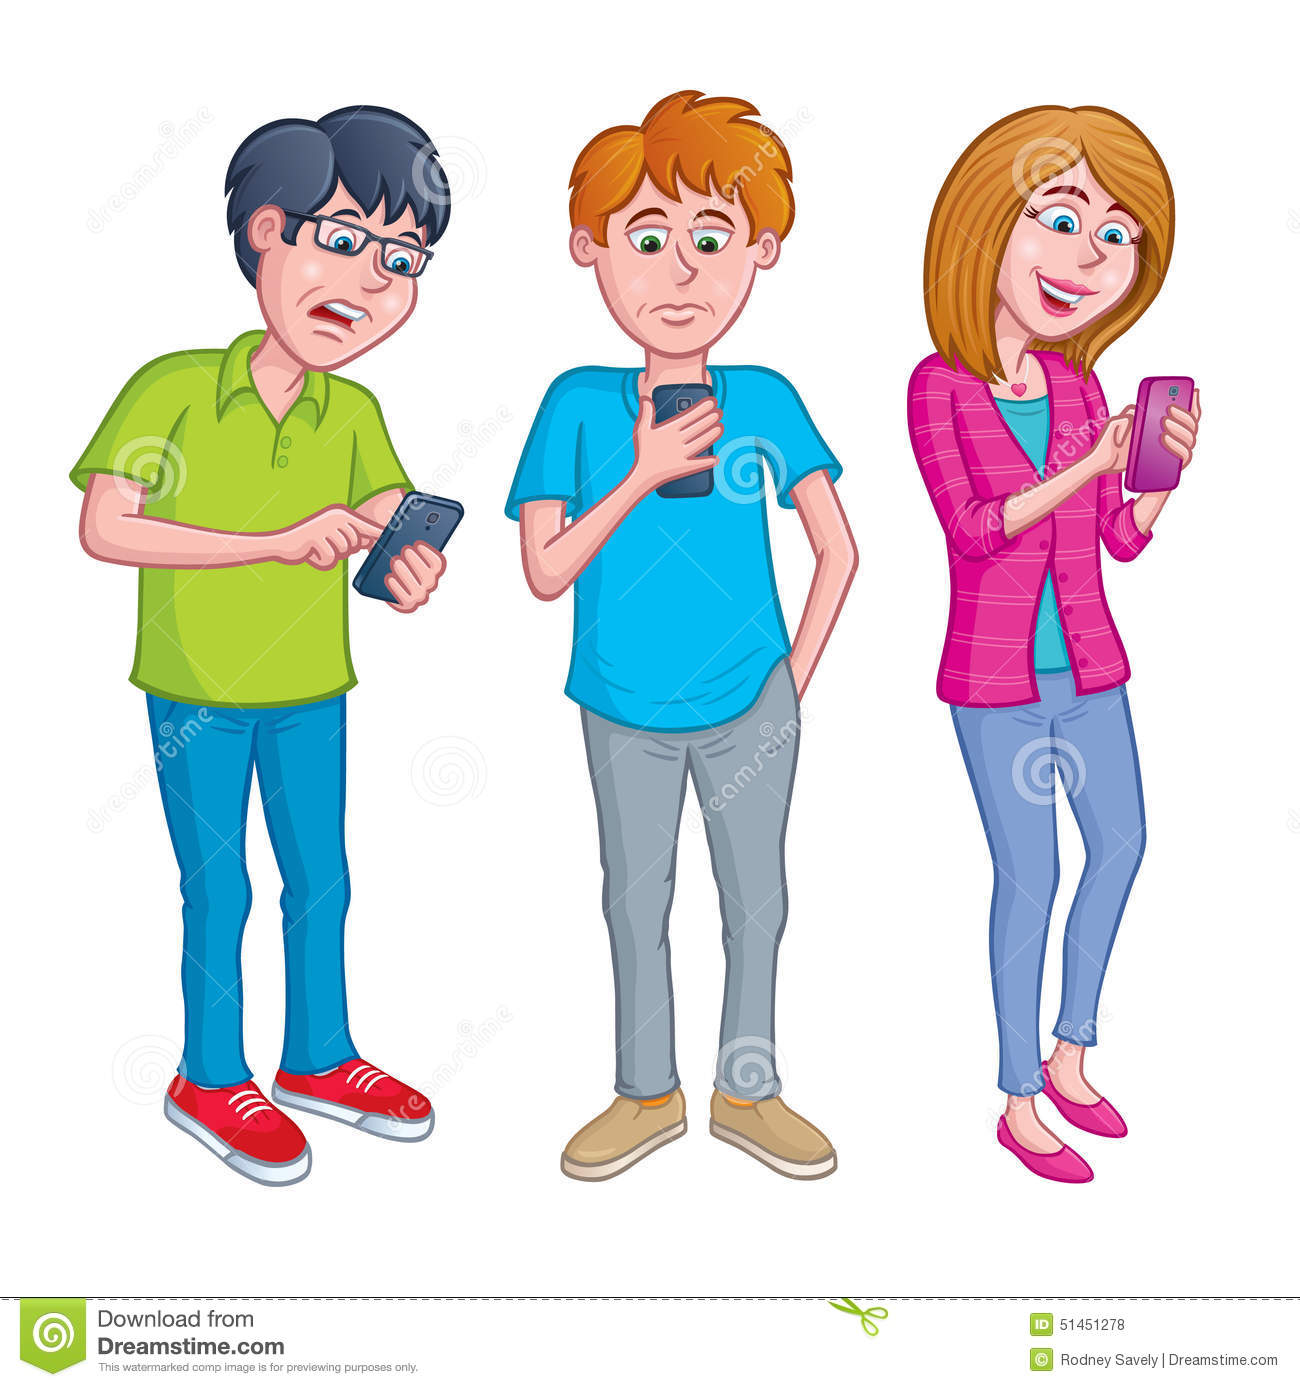 Teen Cell Phone Contract - Download for Free